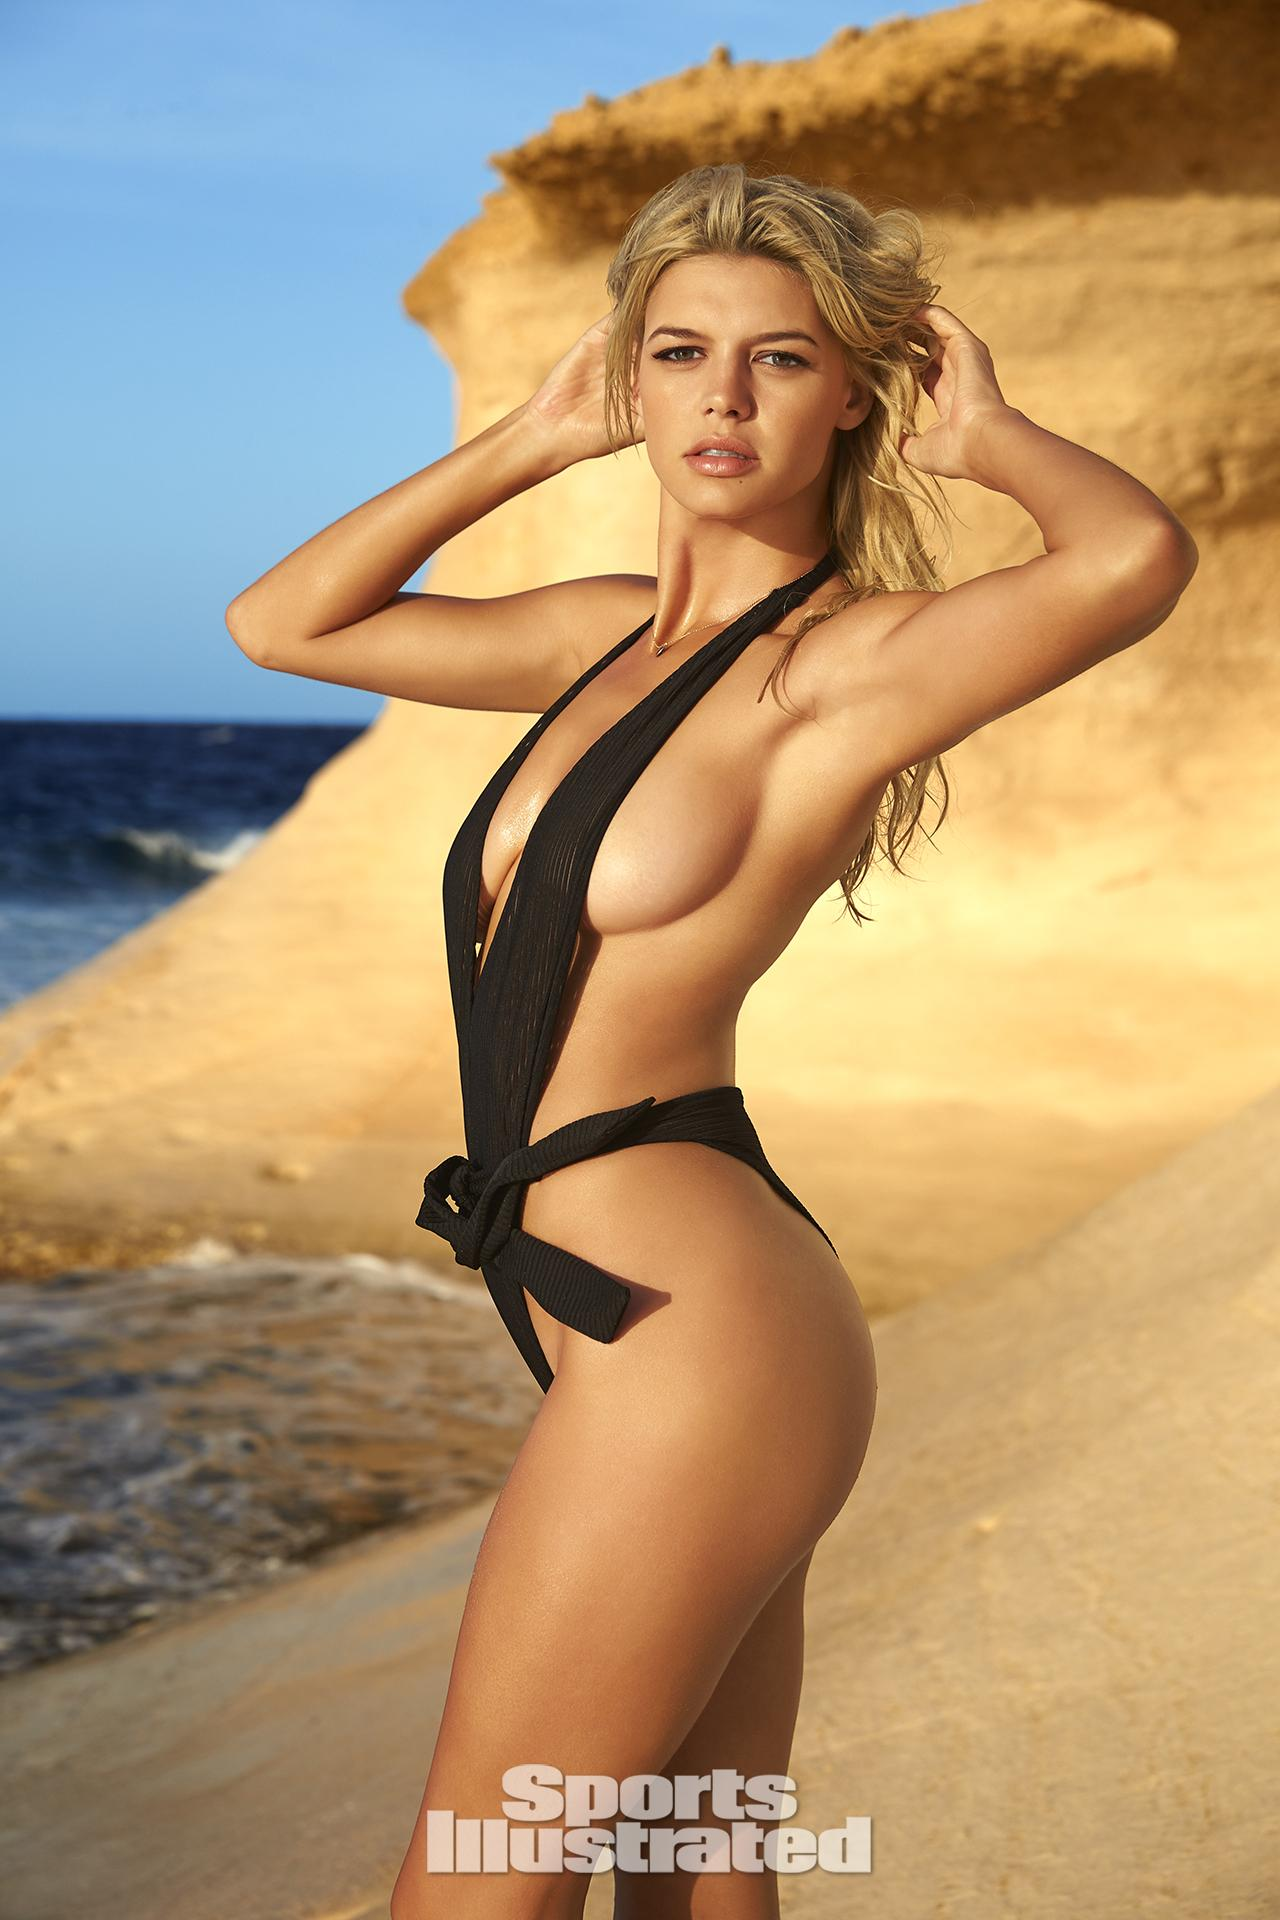 baywatch babe kelly-rohrbach shines in sexy 2016-sports-illustrated swimsuit edition 1